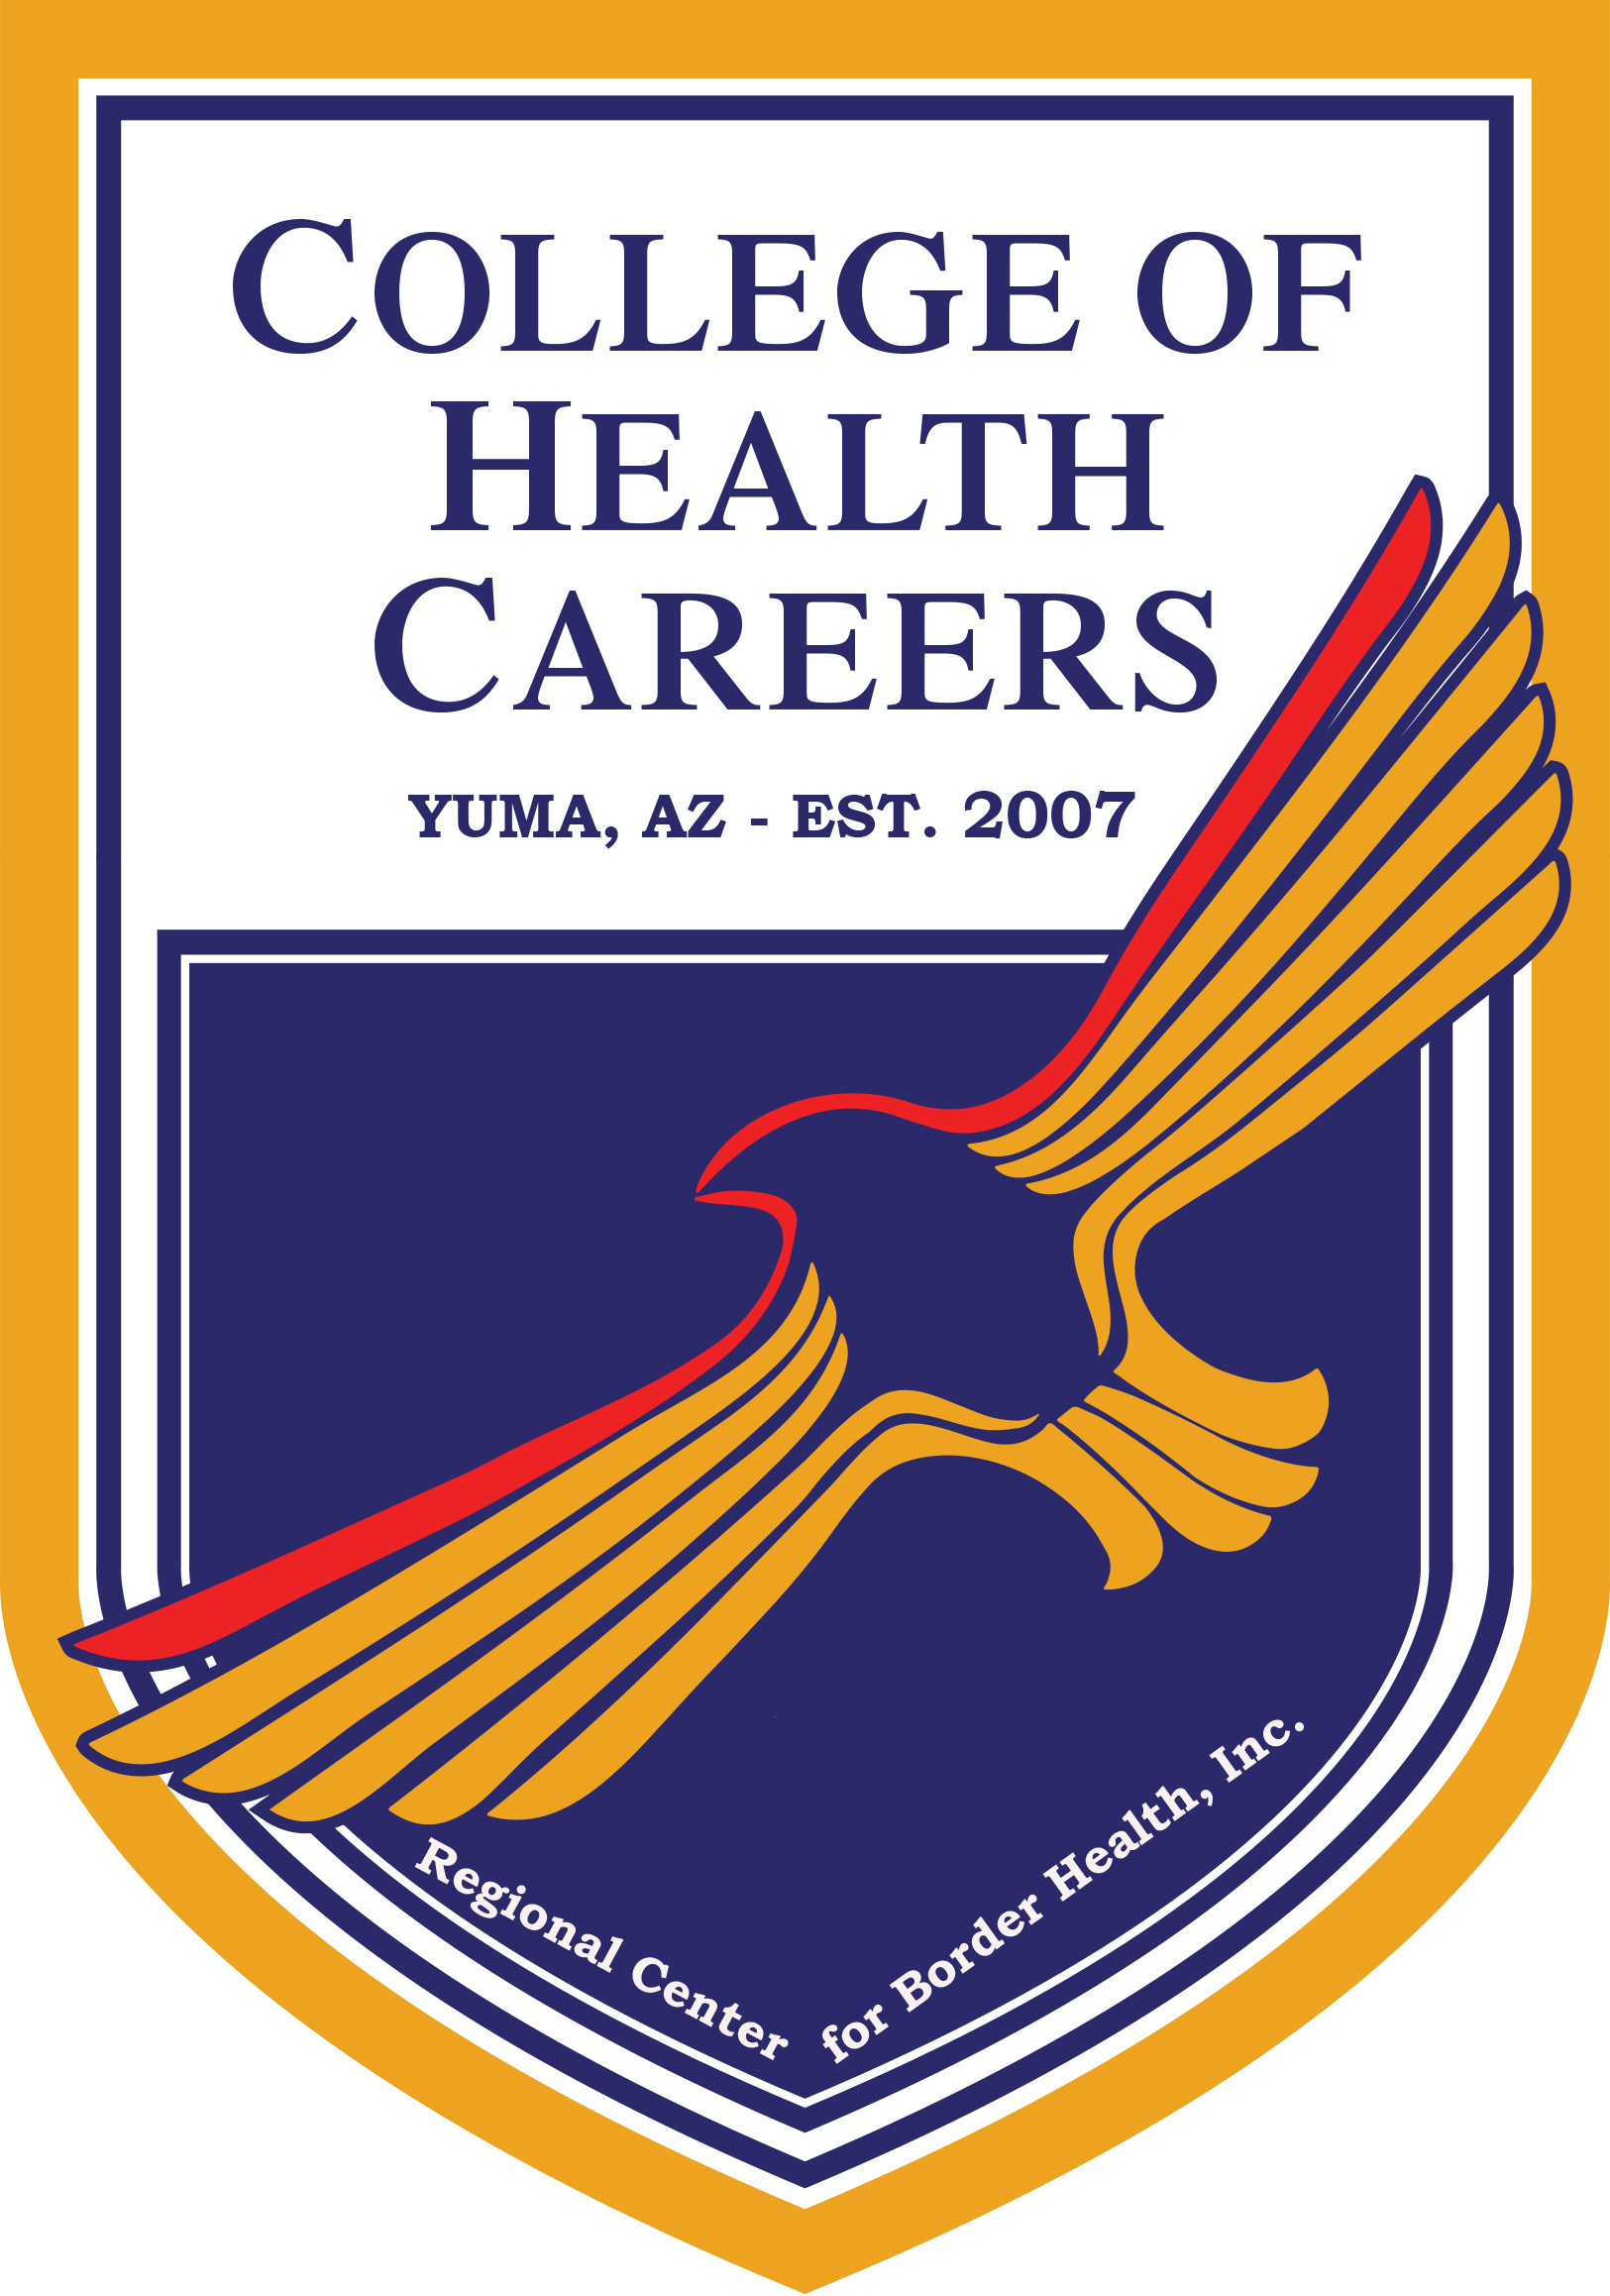 Programs College of Health Careers - Regional Center for